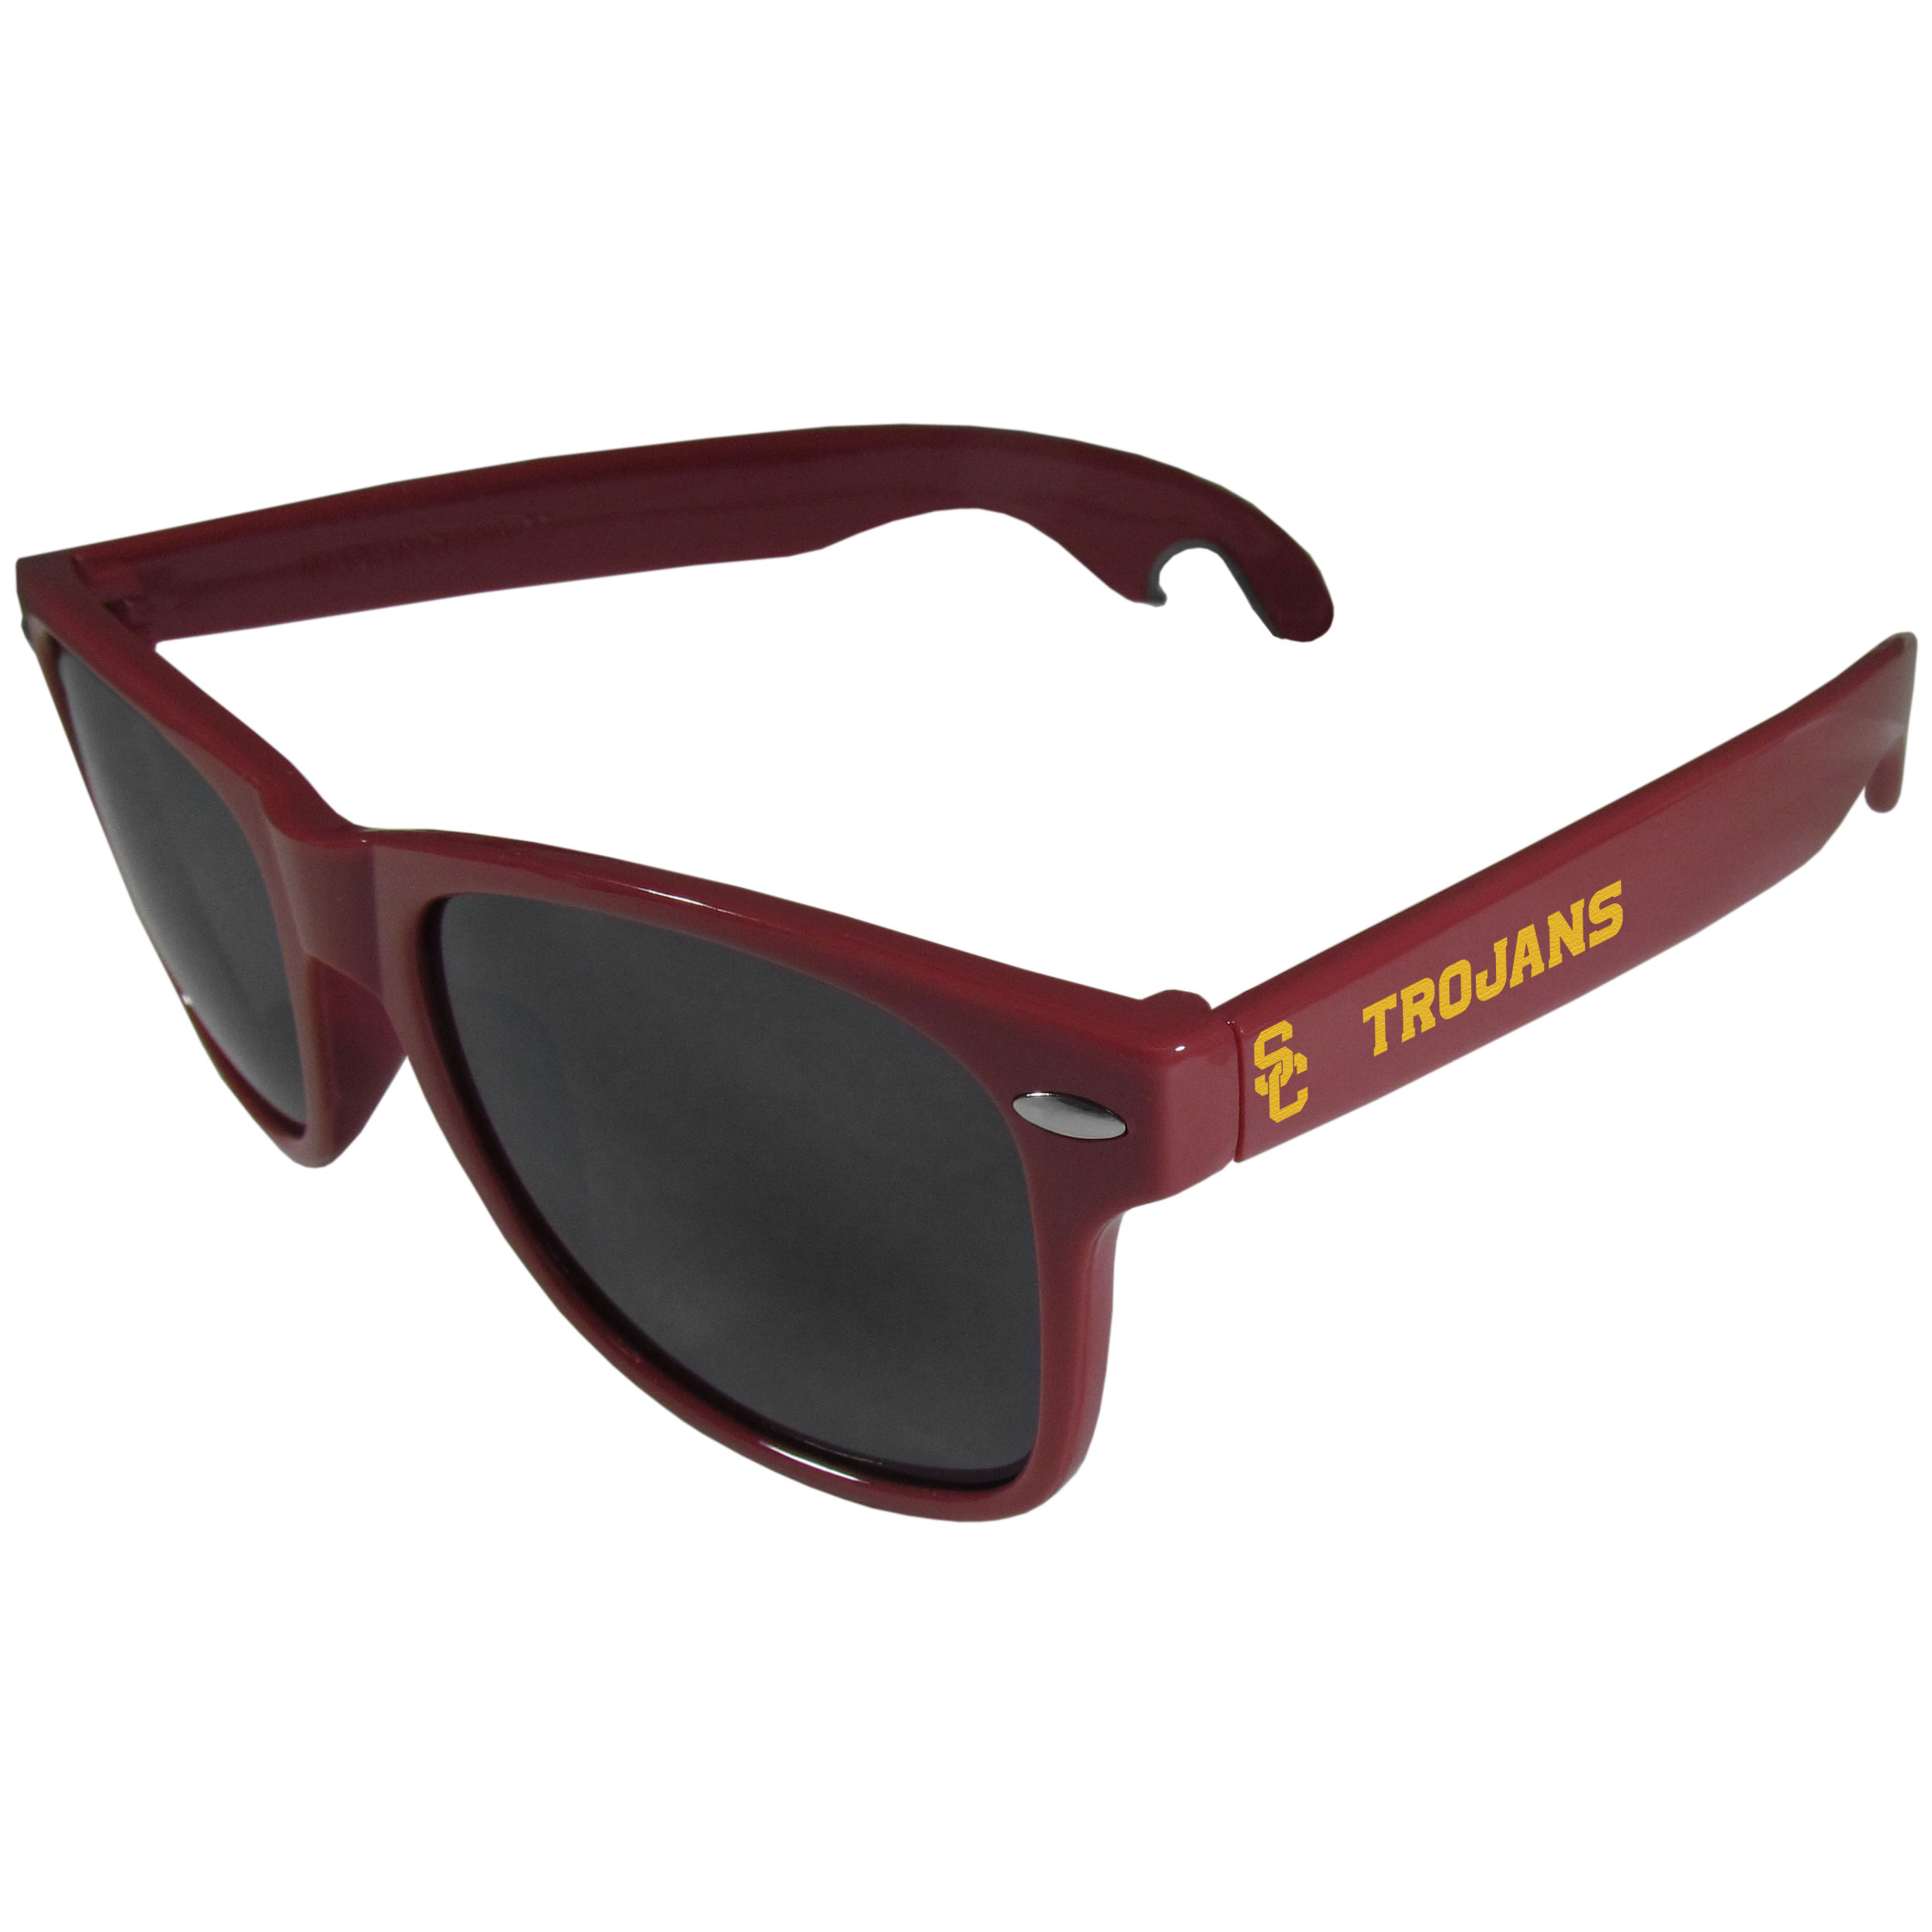 USC Trojans Beachfarer Bottle Opener Sunglasses, Maroon - Seriously, these sunglasses open bottles! Keep the party going with these amazing USC Trojans bottle opener sunglasses. The stylish retro frames feature team designs on the arms and functional bottle openers on the end of the arms. Whether you are at the beach or having a backyard BBQ on game day, these shades will keep your eyes protected with 100% UVA/UVB protection and keep you hydrated with the handy bottle opener arms.